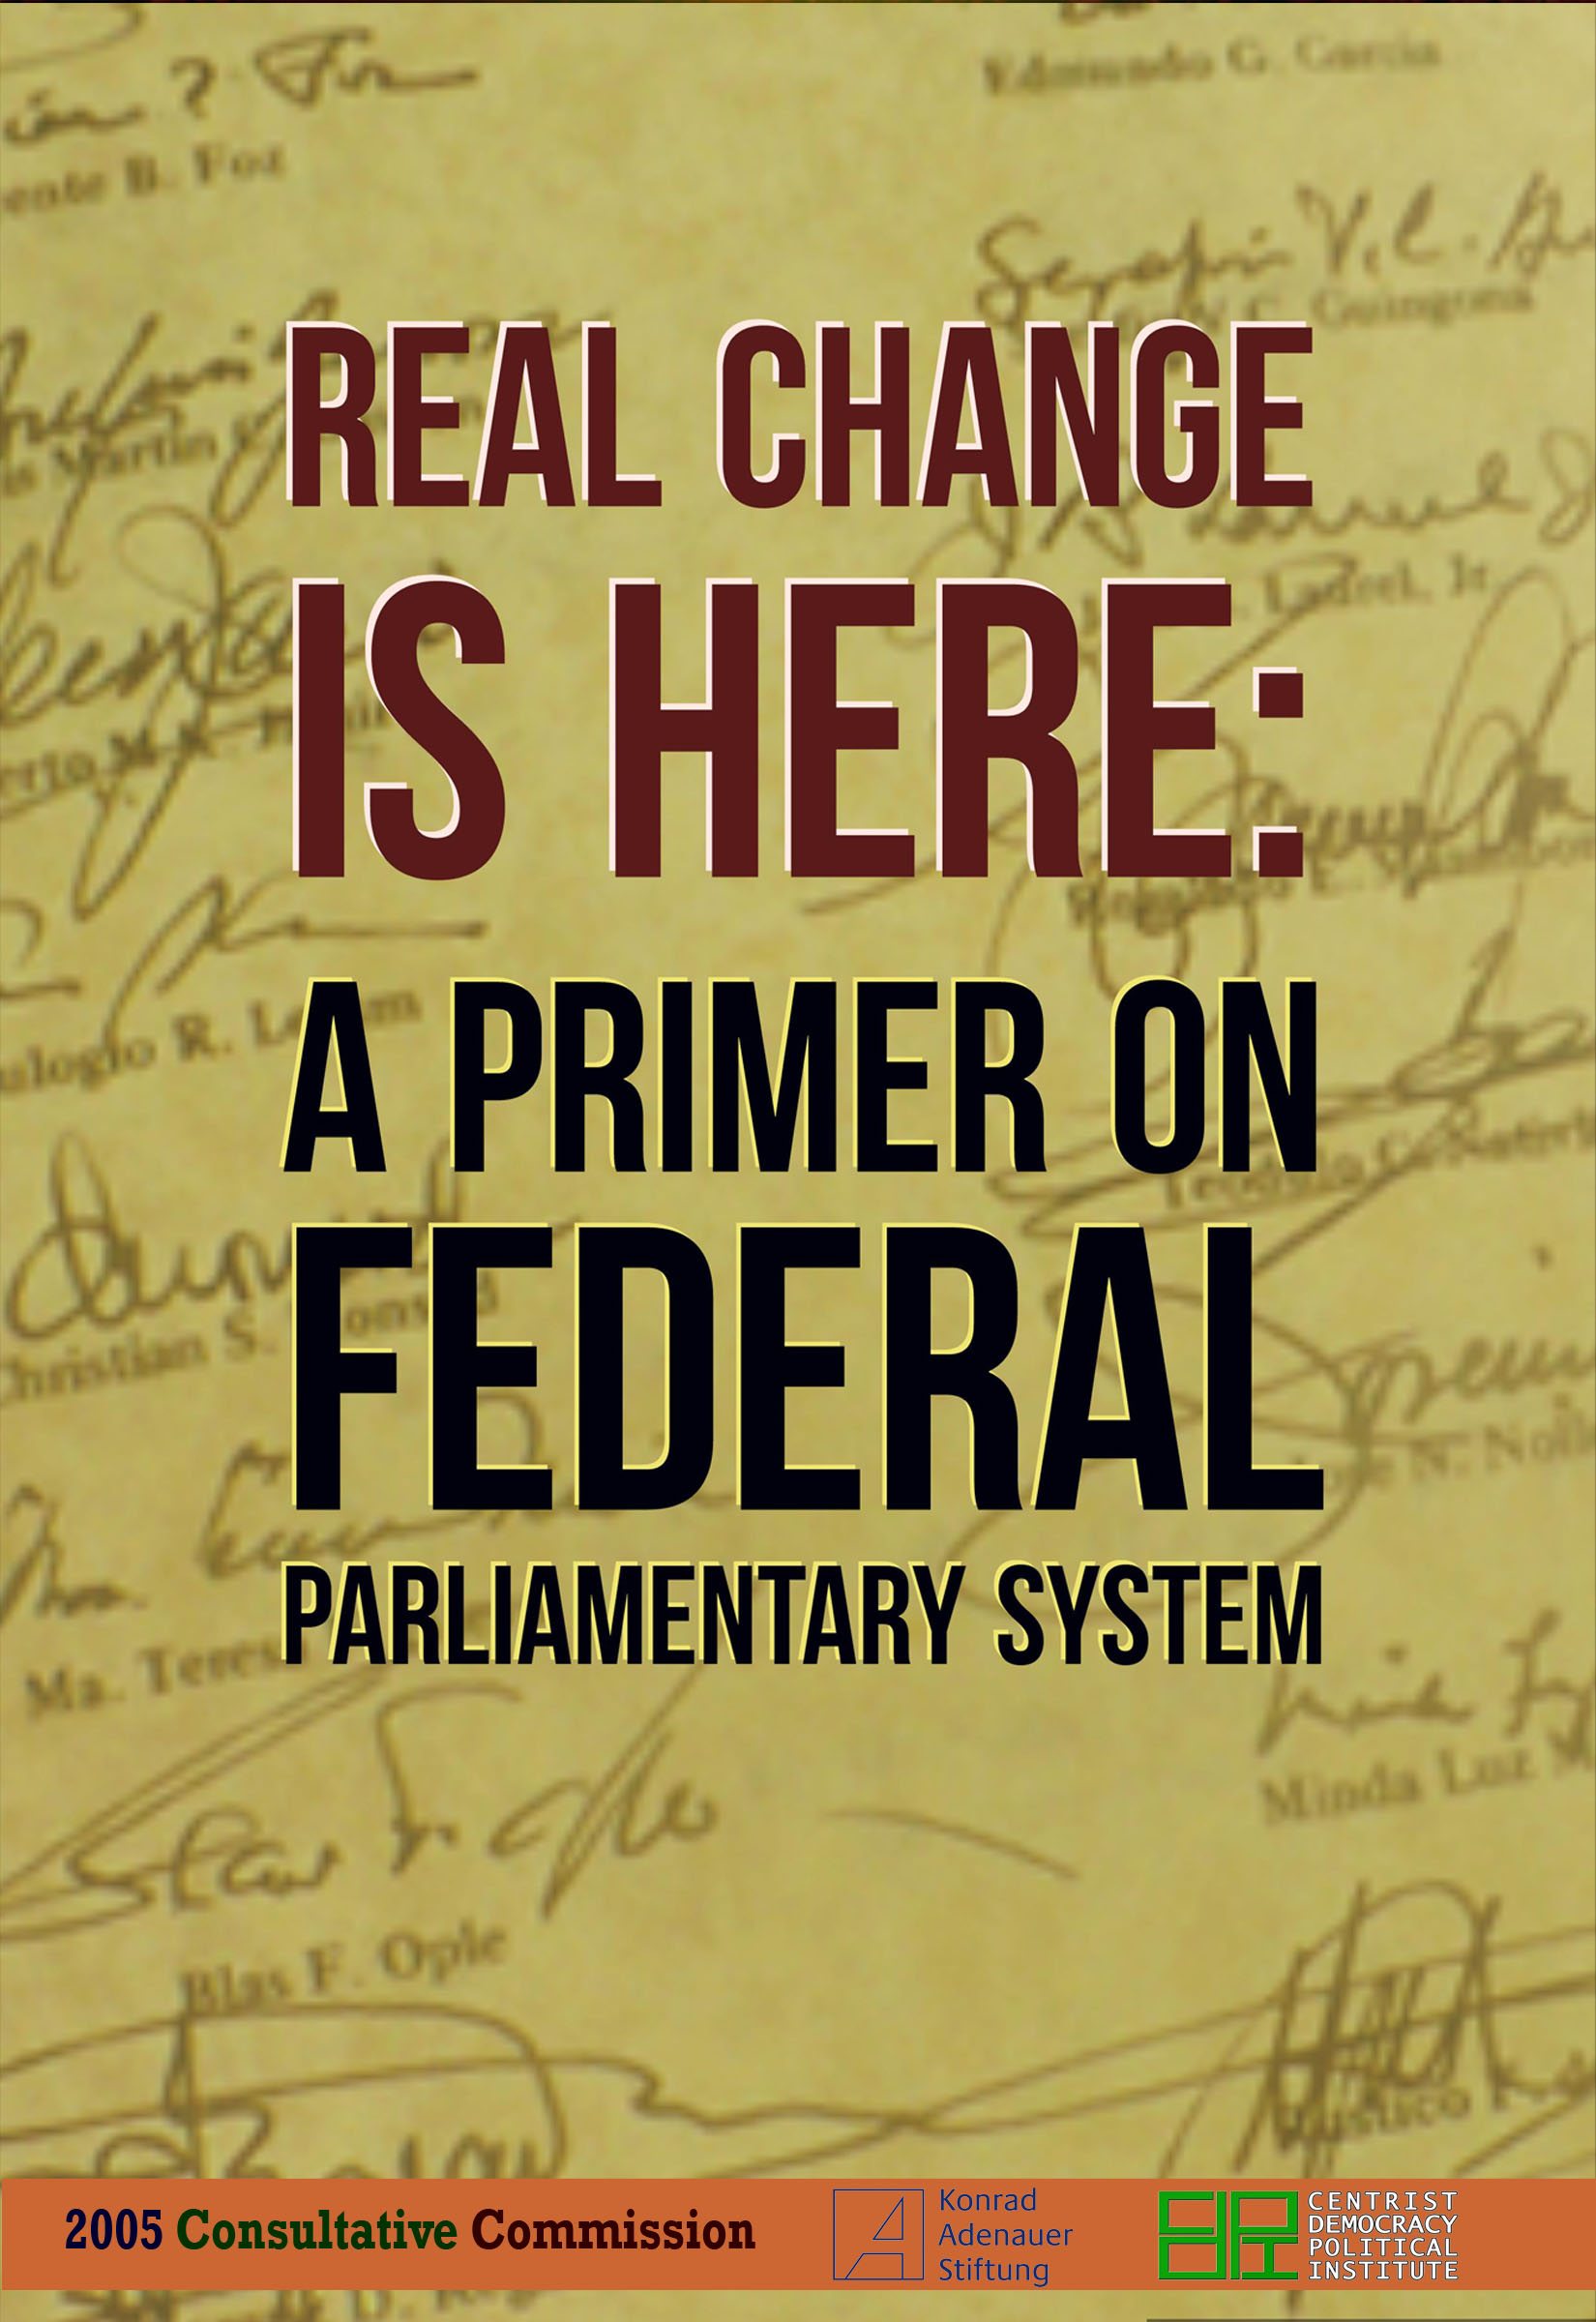 Real Change is Here: A Primer on Federal Parliamentary System